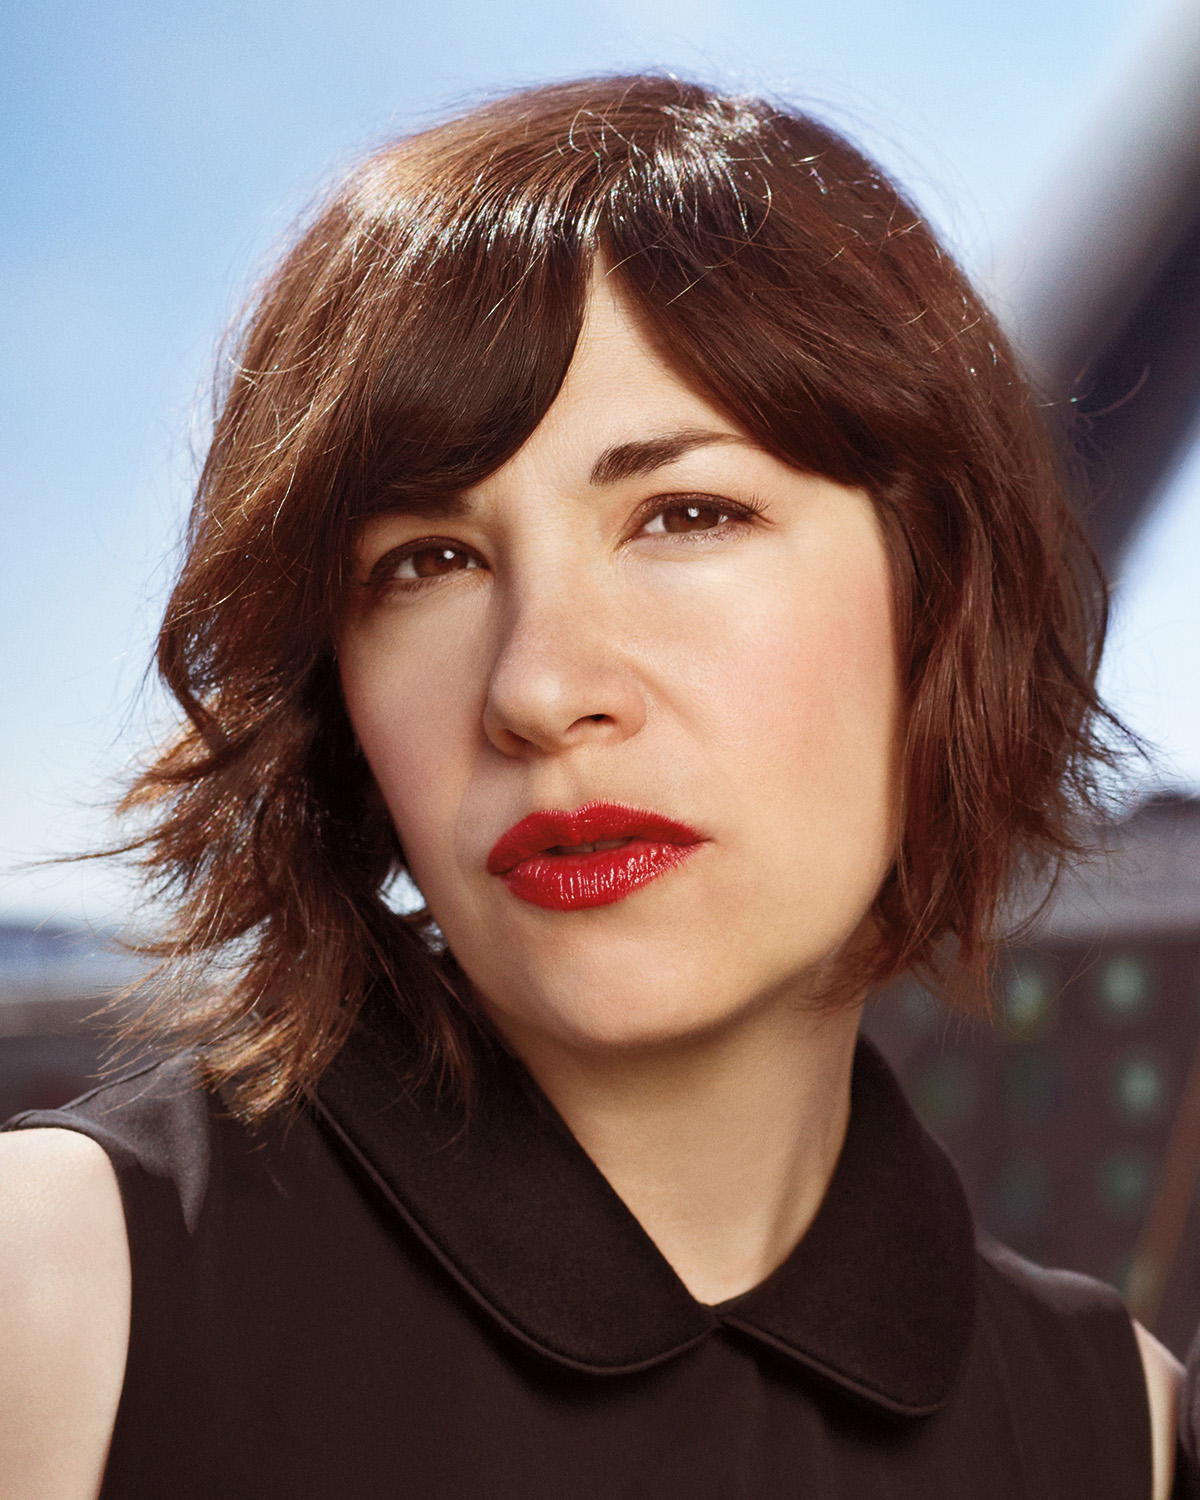 Carrie Brownstein's Headshot